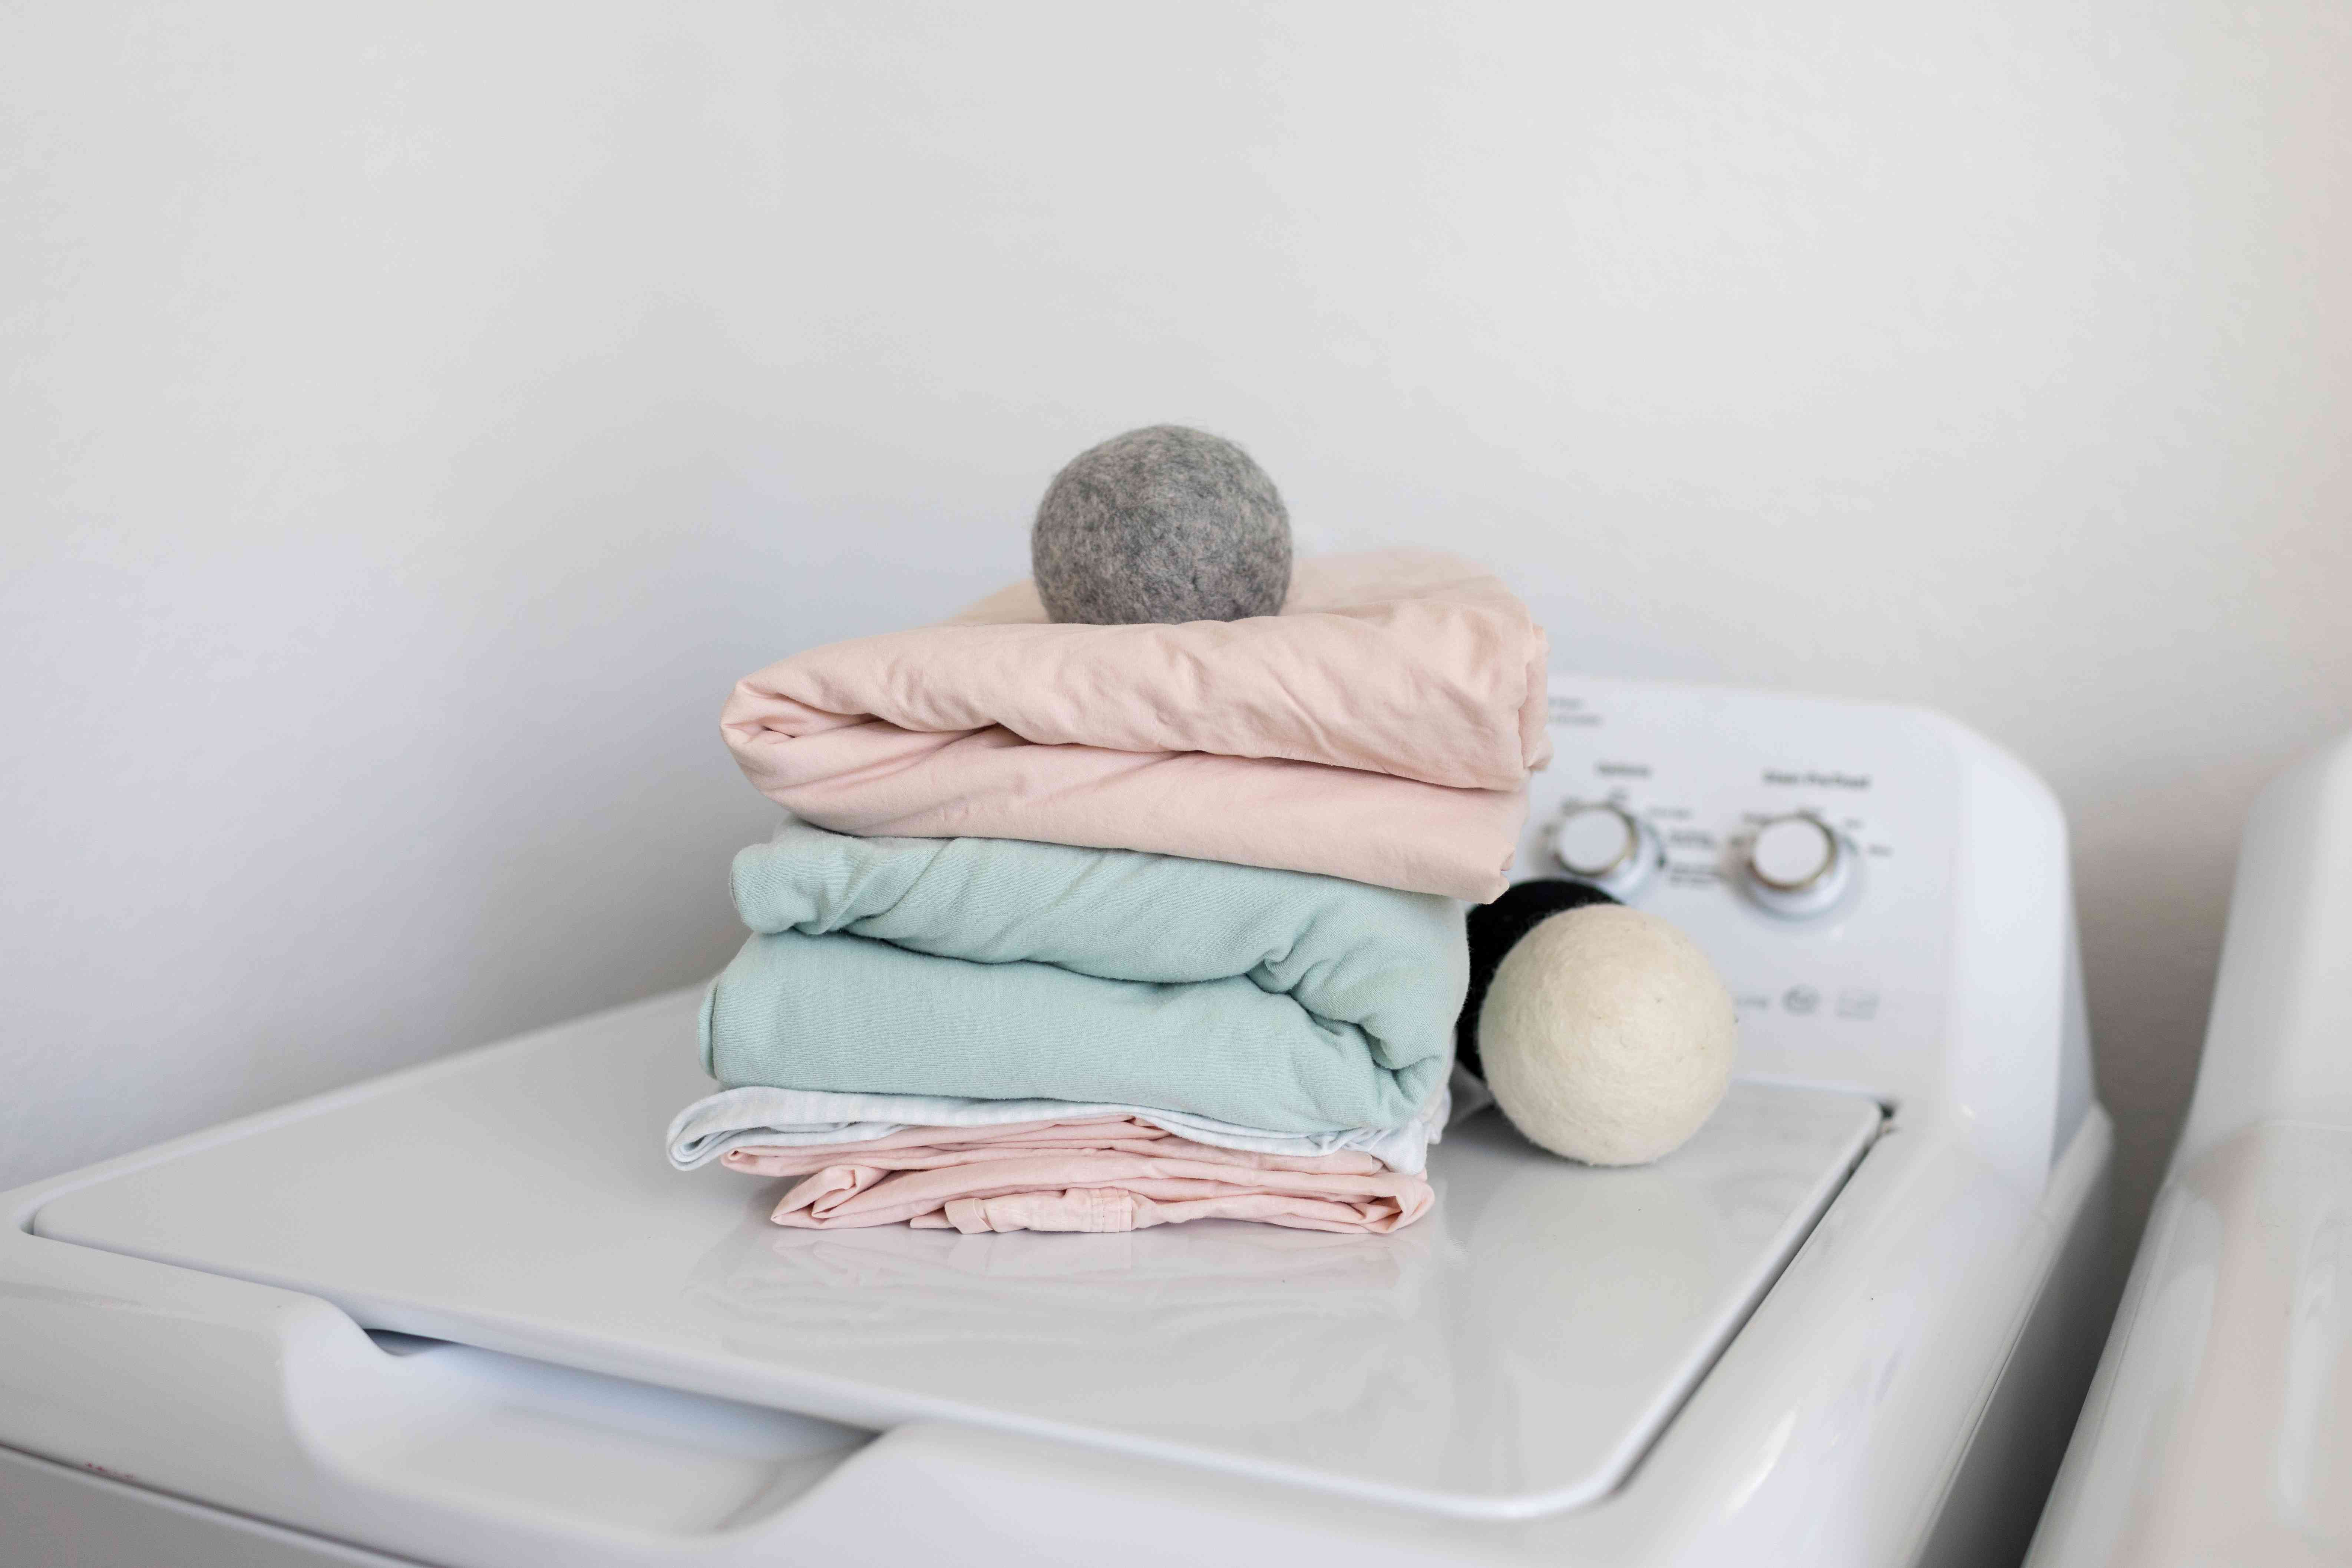 stack of folded bed sheets and wool dryer balls on top of washing machine